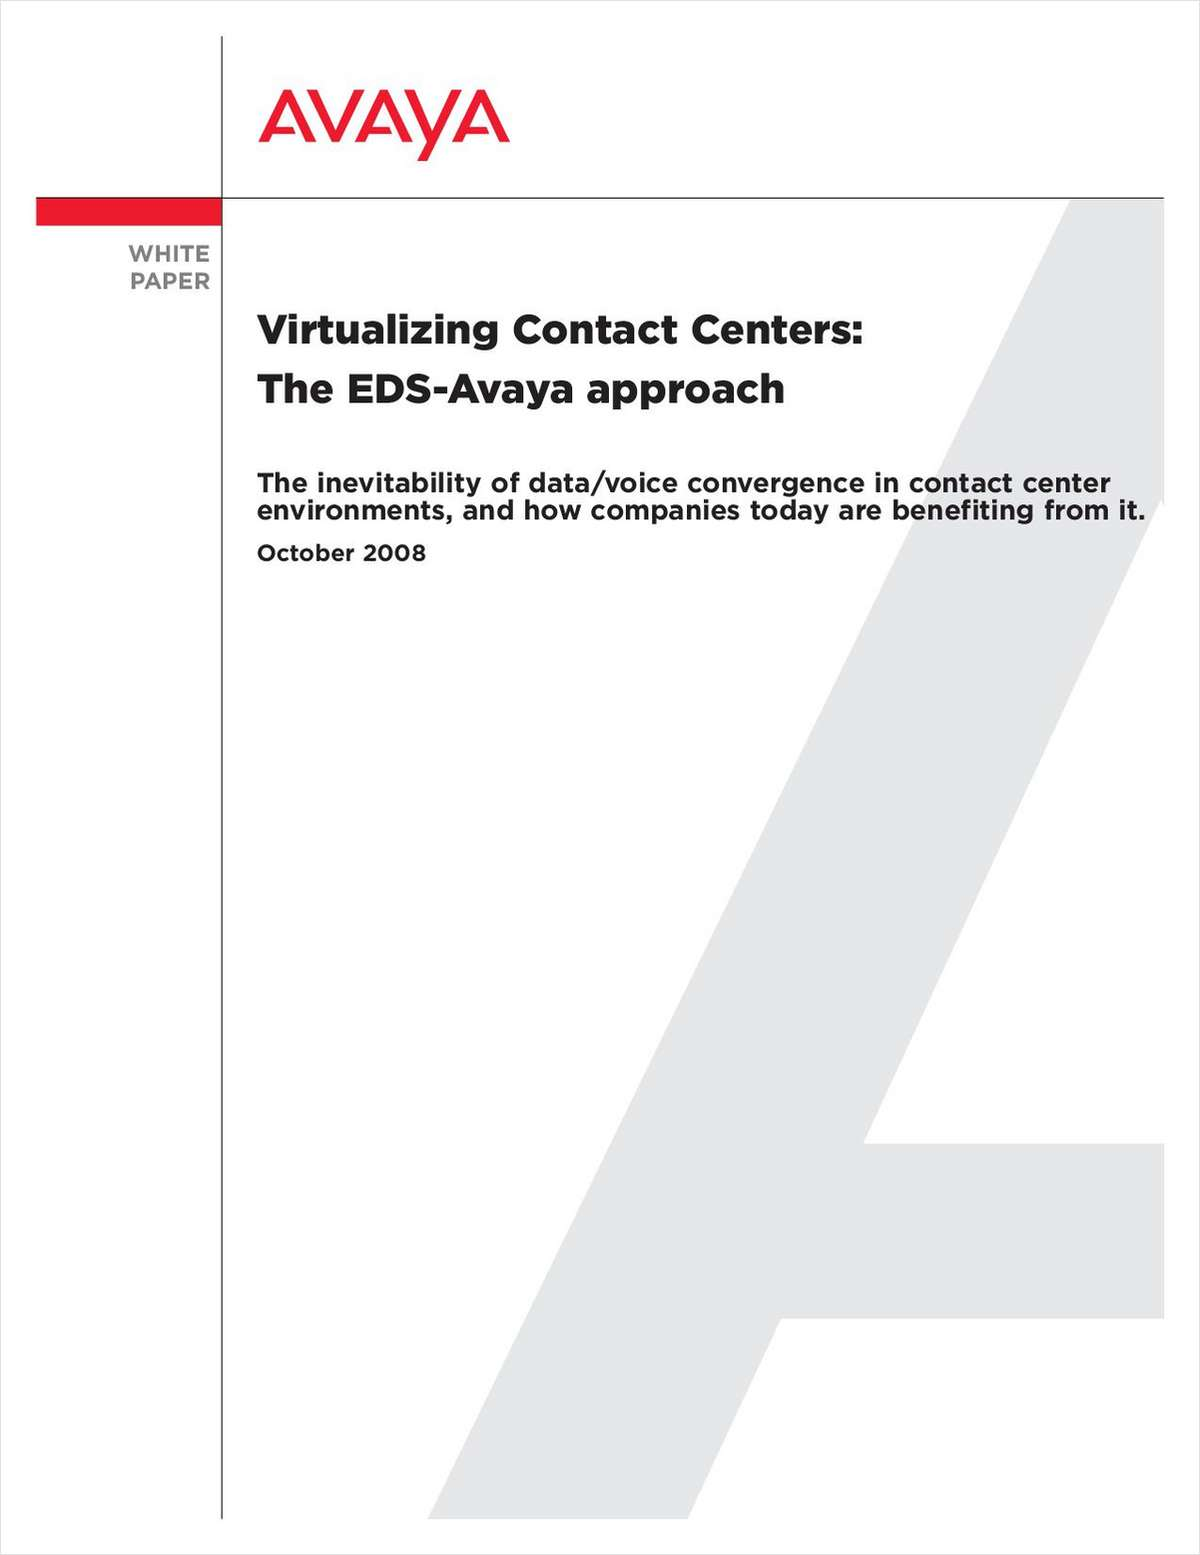 Maximize Your IT Investment: The Avaya/EDS Virtualized Contact Center Model